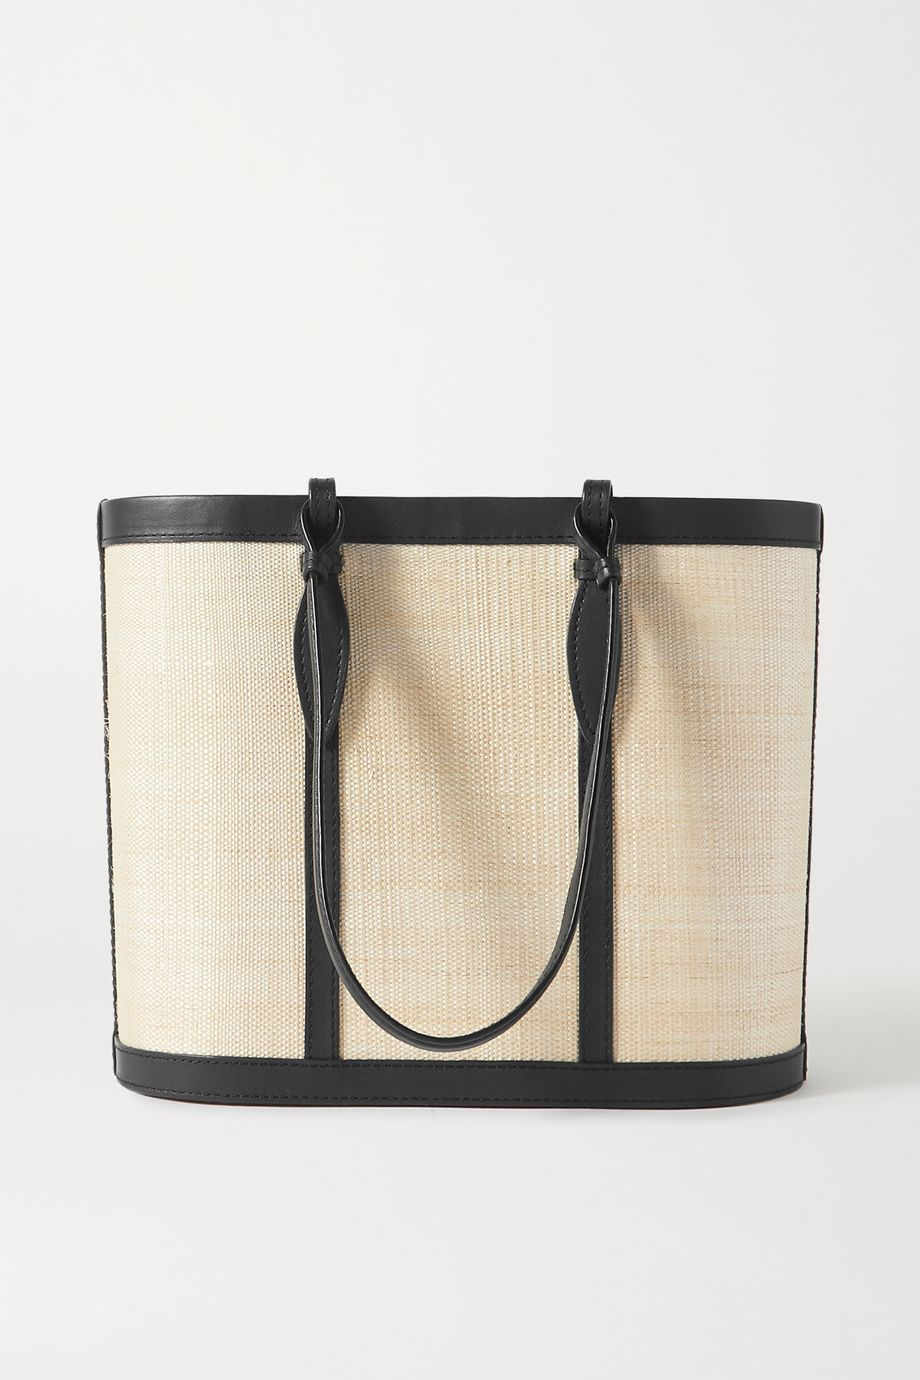 Hunting Season Basket leather-trimmed raffia tote